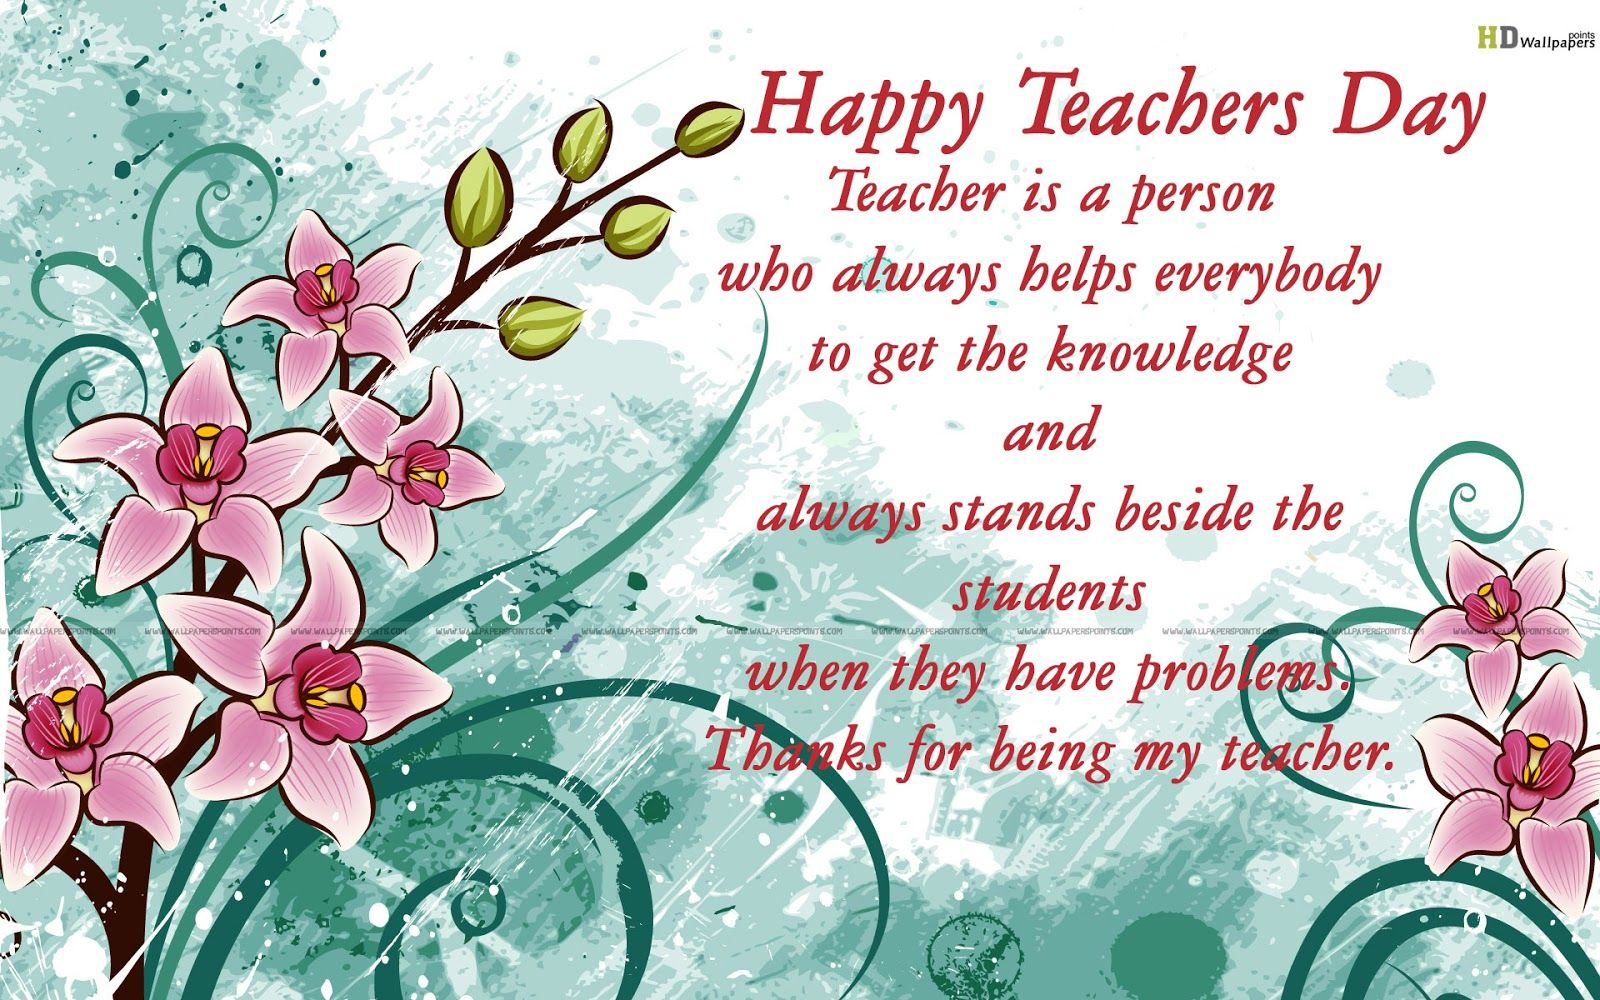 Teachers Day Wishes Images Hd Collection 2016 Happy Teachers Day Wishes Happy Teachers Day